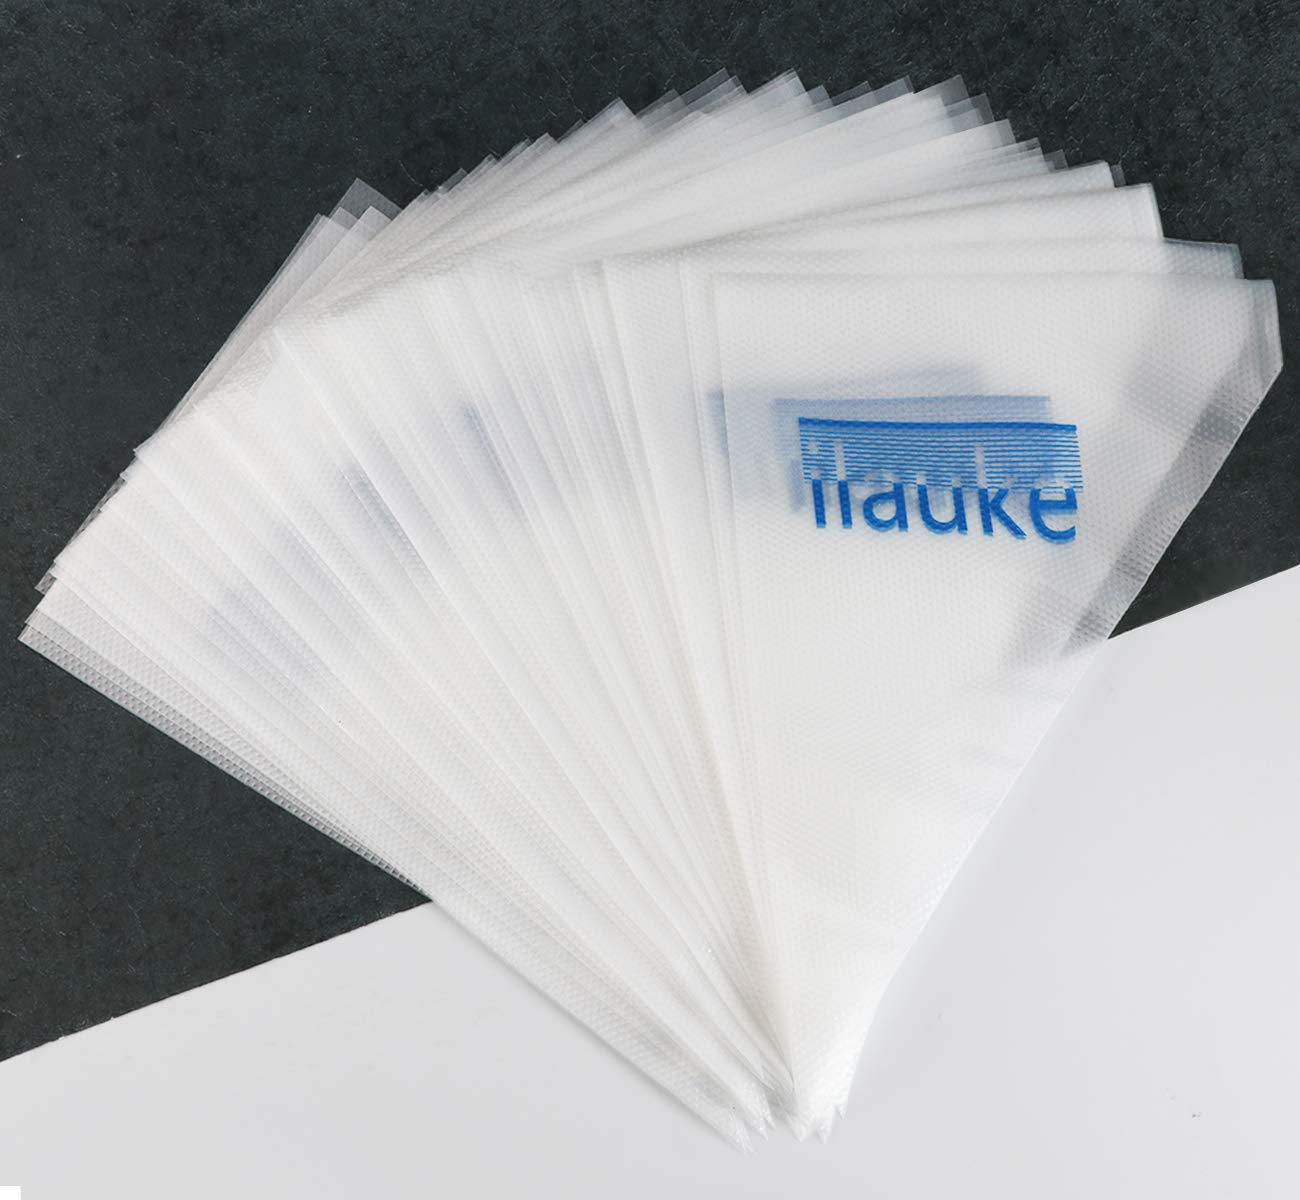 ilauke 100 Pack Thickened 15 inch Decorating Pastry Bags Disposable Icing Piping Bags for Cake Dessert Decoration IKL-100 KIT